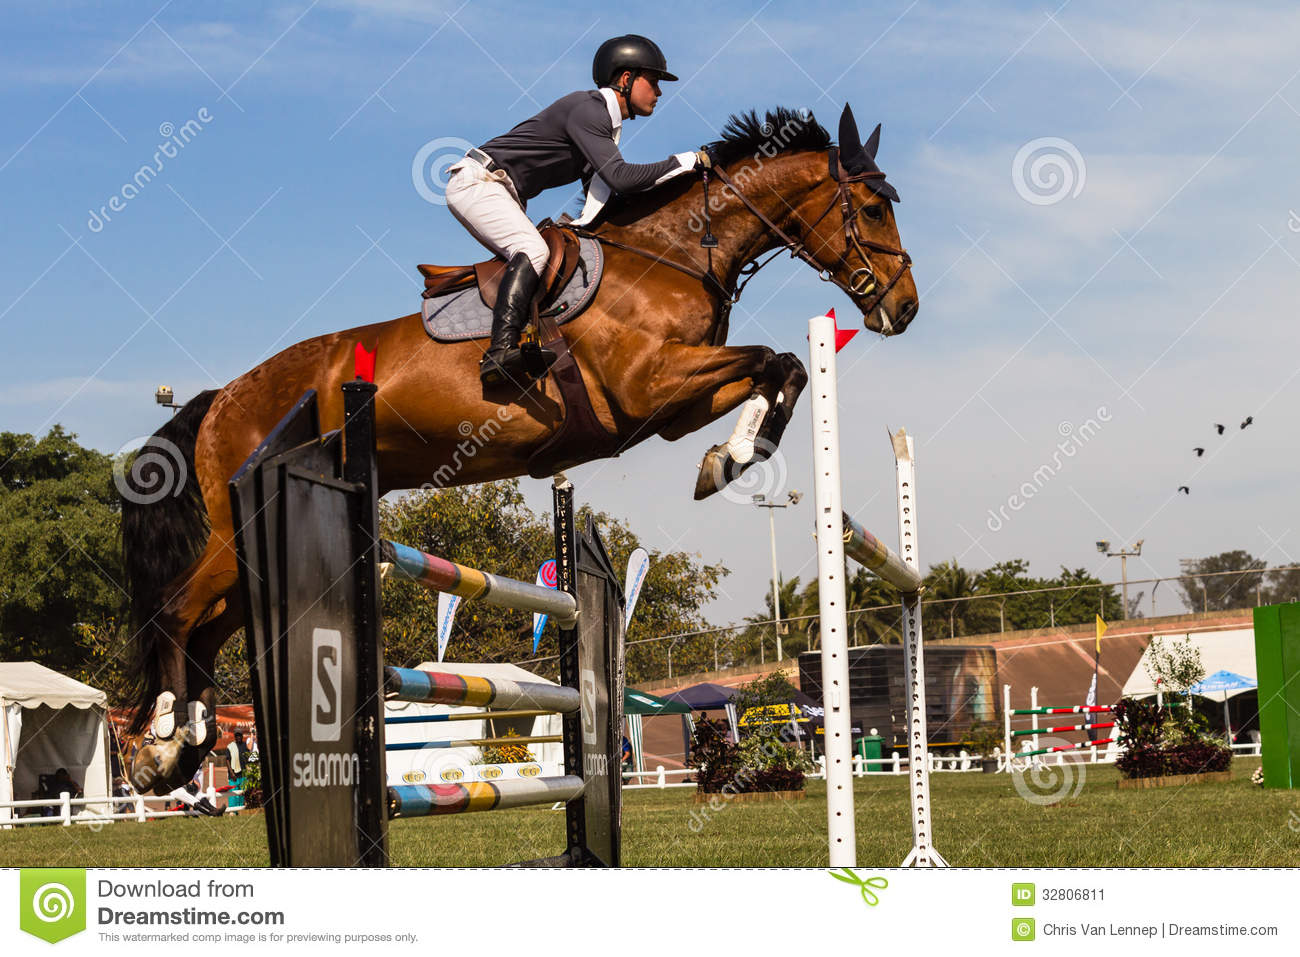 Horse Rider Gate Jump Flight Color Editorial Photo Image Of Male Equestrian 32806811